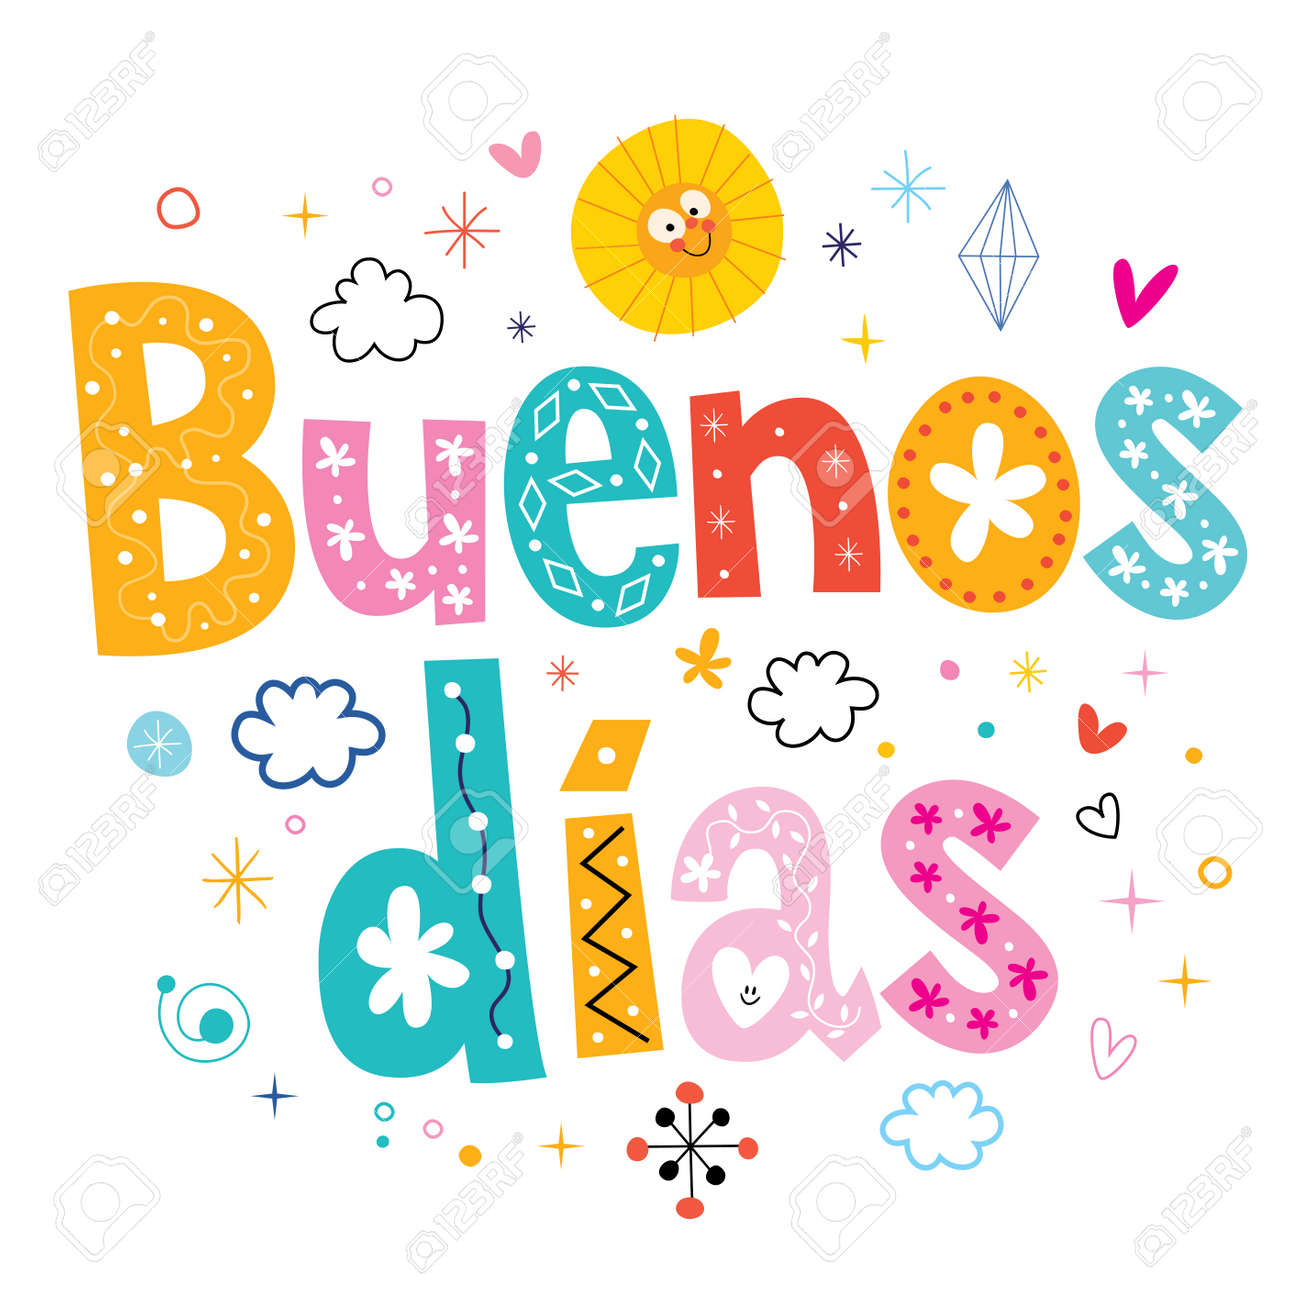 buenos dias good day good morning in spanish royalty free cliparts